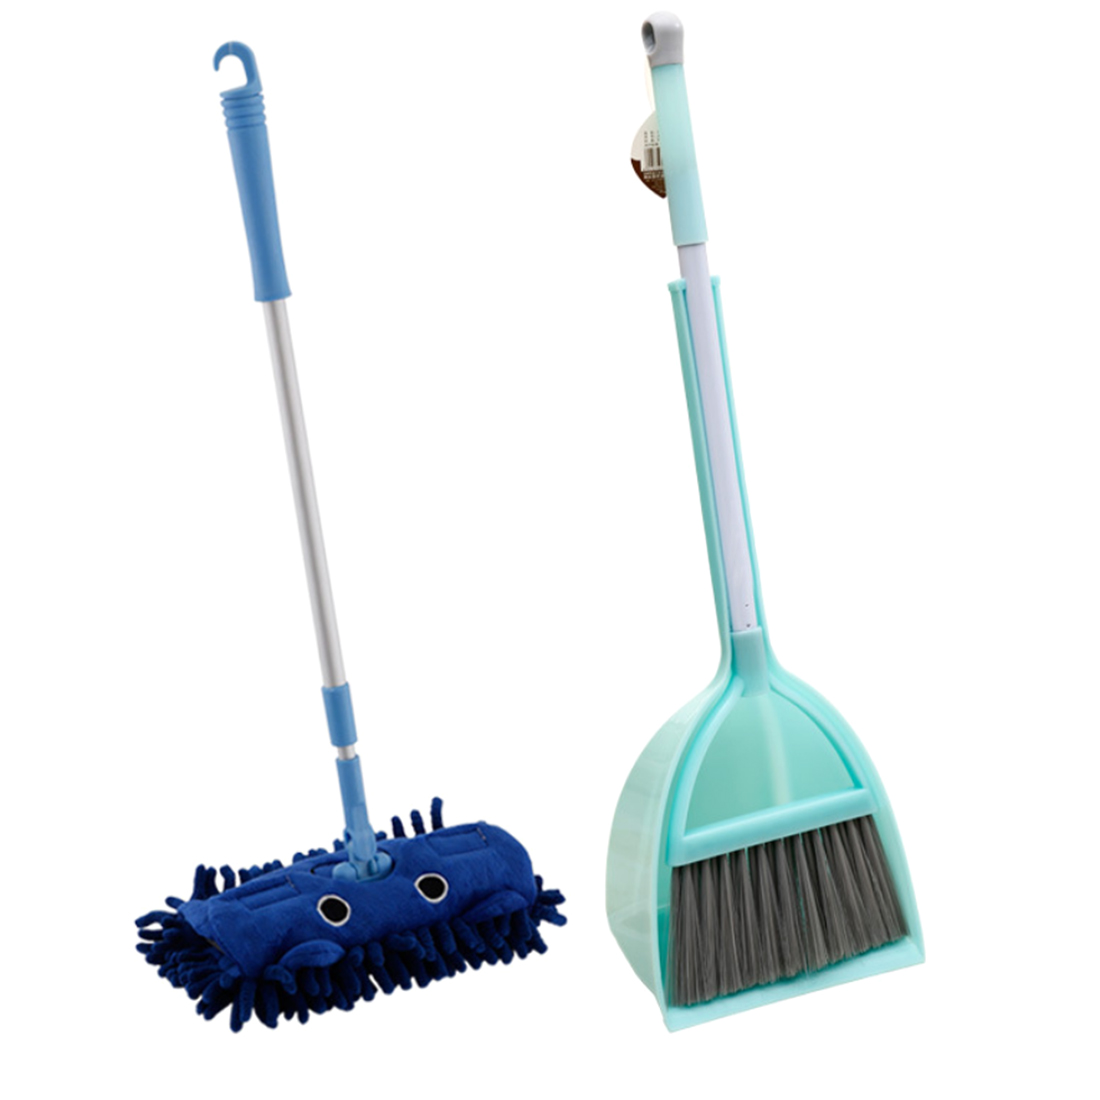 Baby Play Housekeeping Toys Kits Children Housekeeping Cleaning Tools Kit With Mop Broom Dustpan - Mint Green + Blue